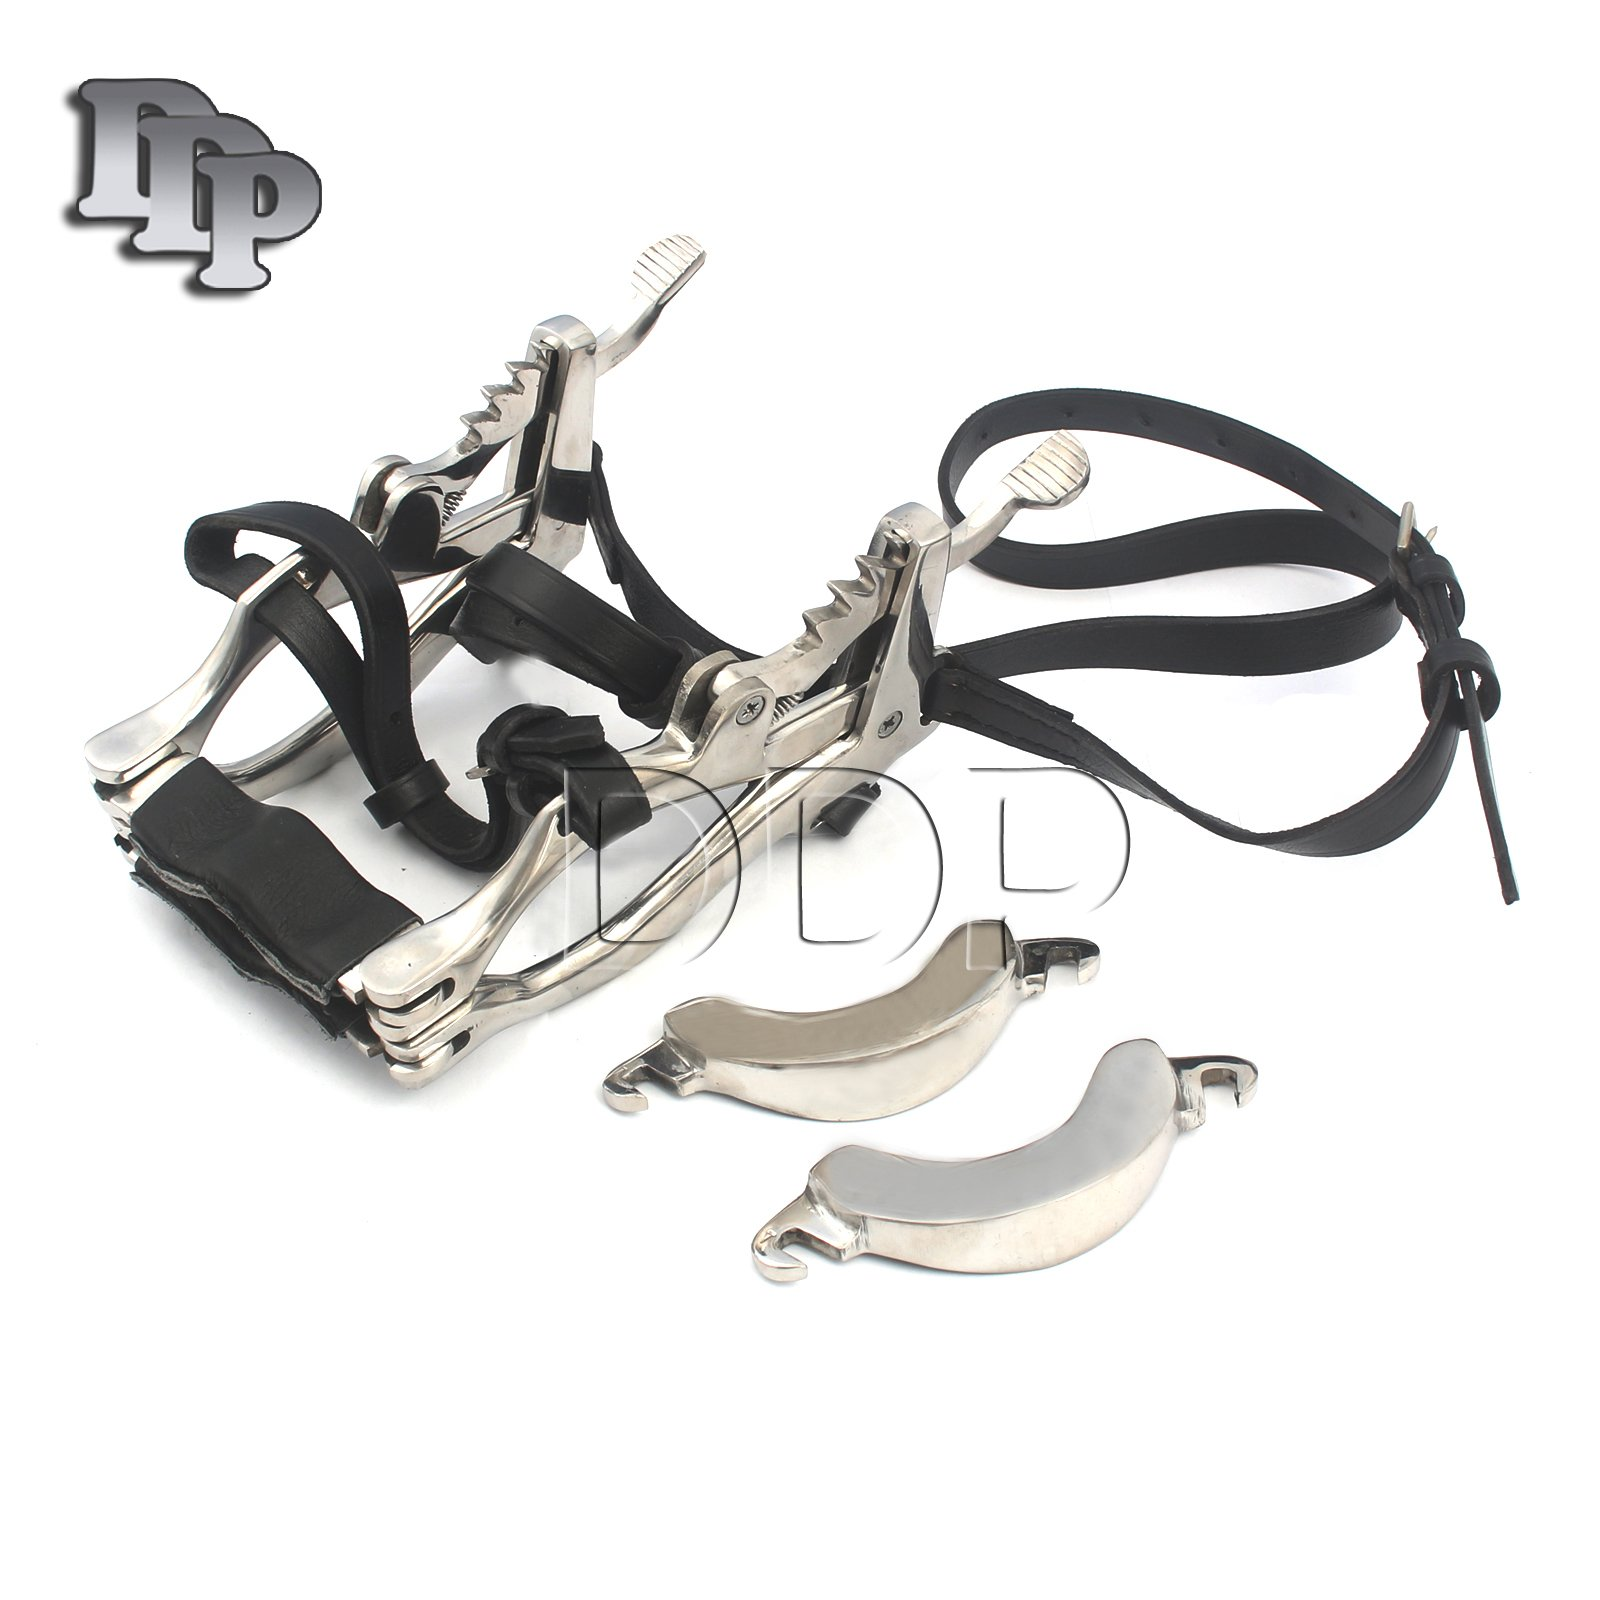 DDP EQUINE HORSE DENTAL MOUTH GAG SPECULUM STAINLESS STEEL WITH LEATHER STRAPS SERIES 2000 MILLENIUM DENTISTRY VETERINARY BITS CUPS UPPER LOWER JAWS